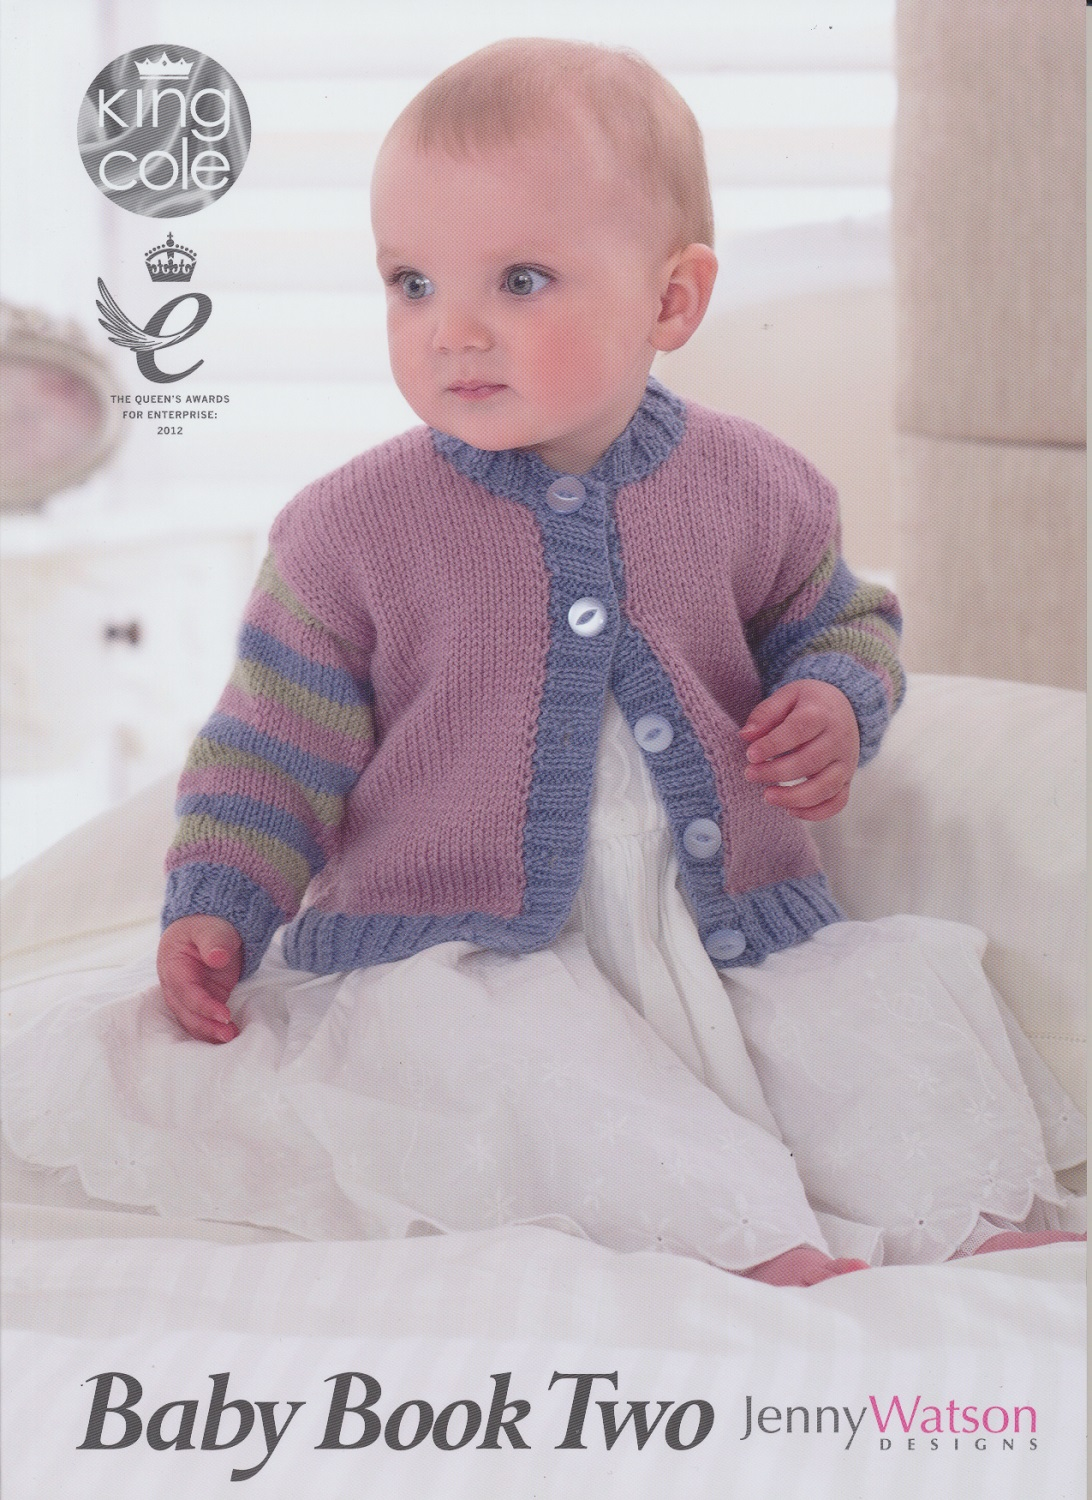 Knitting For Babies Books : King cole baby book two knitting double knit patterns